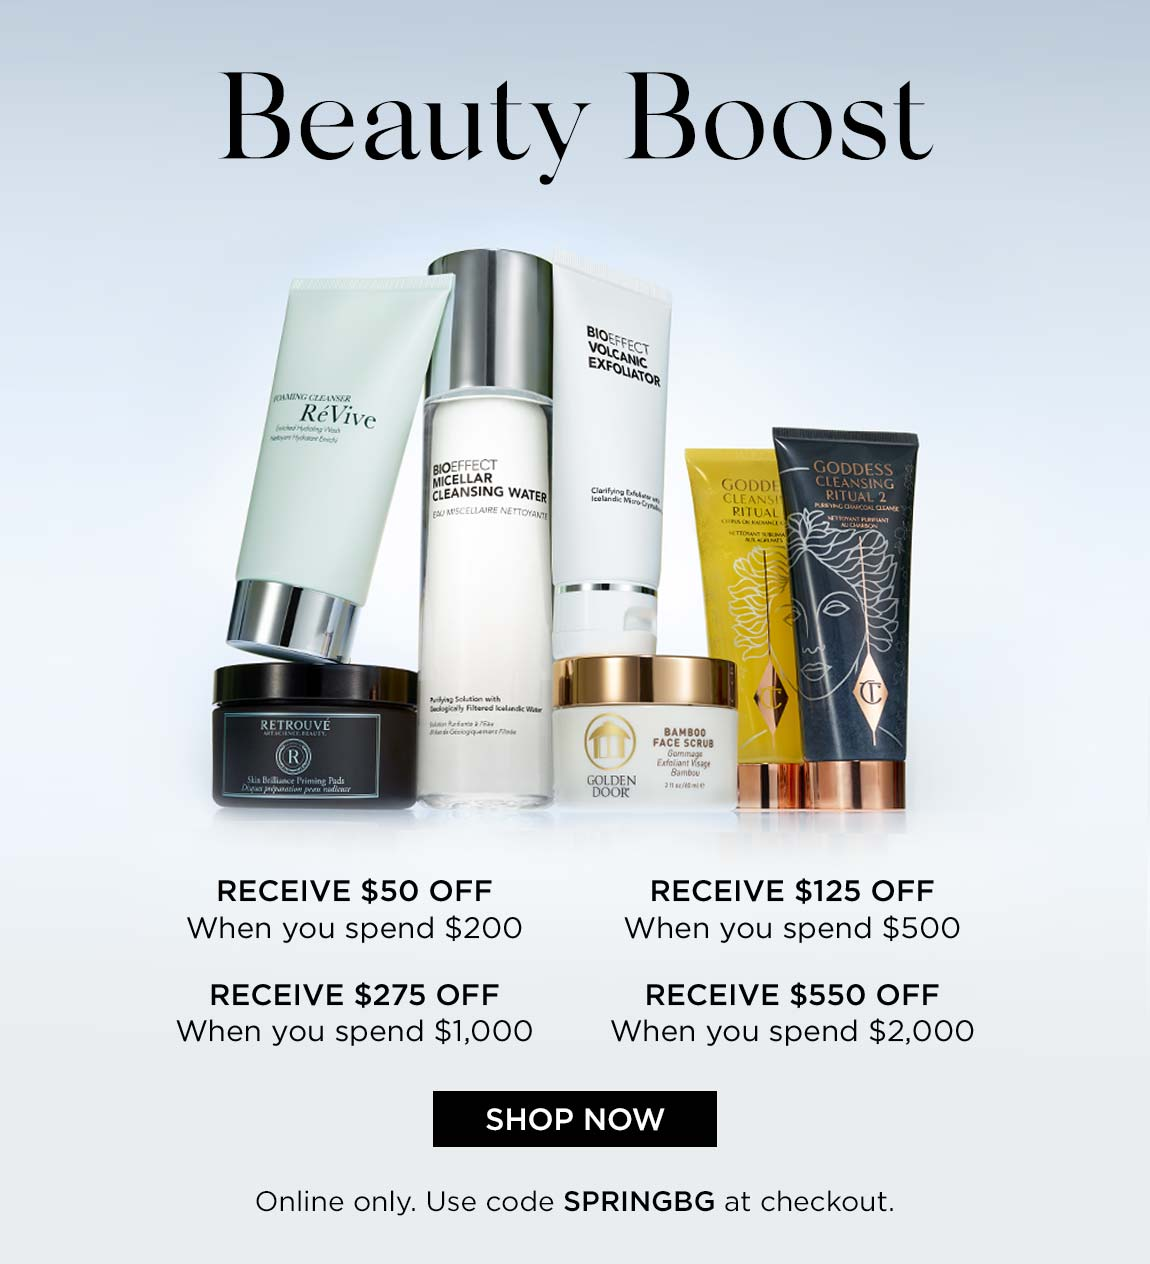 Beauty Boost Event